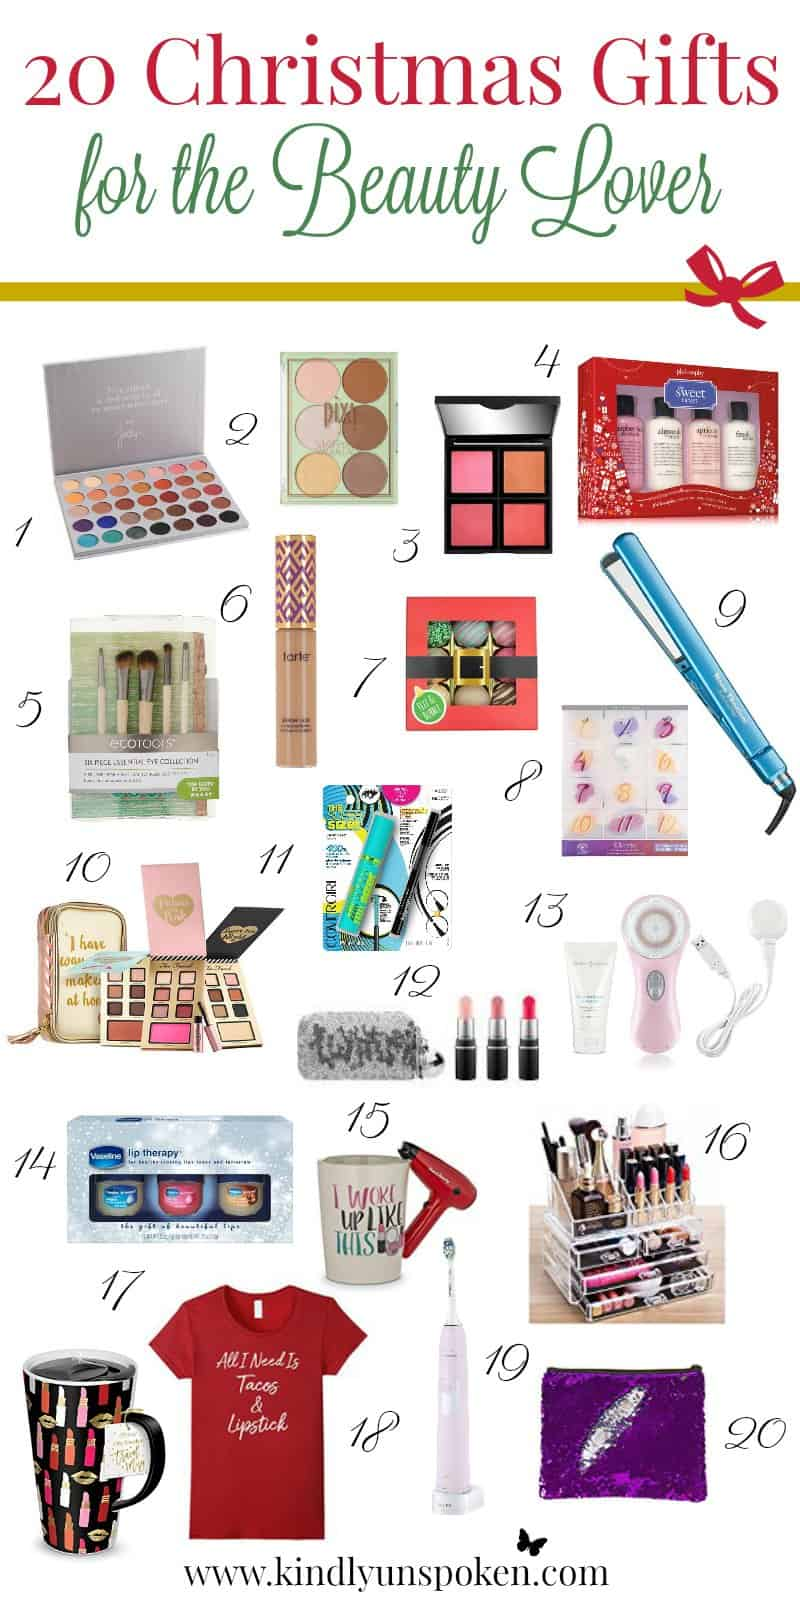 20 Christmas Gifts for the Beauty Lover- Check out this list of top rated products any beauty lover would love to get!